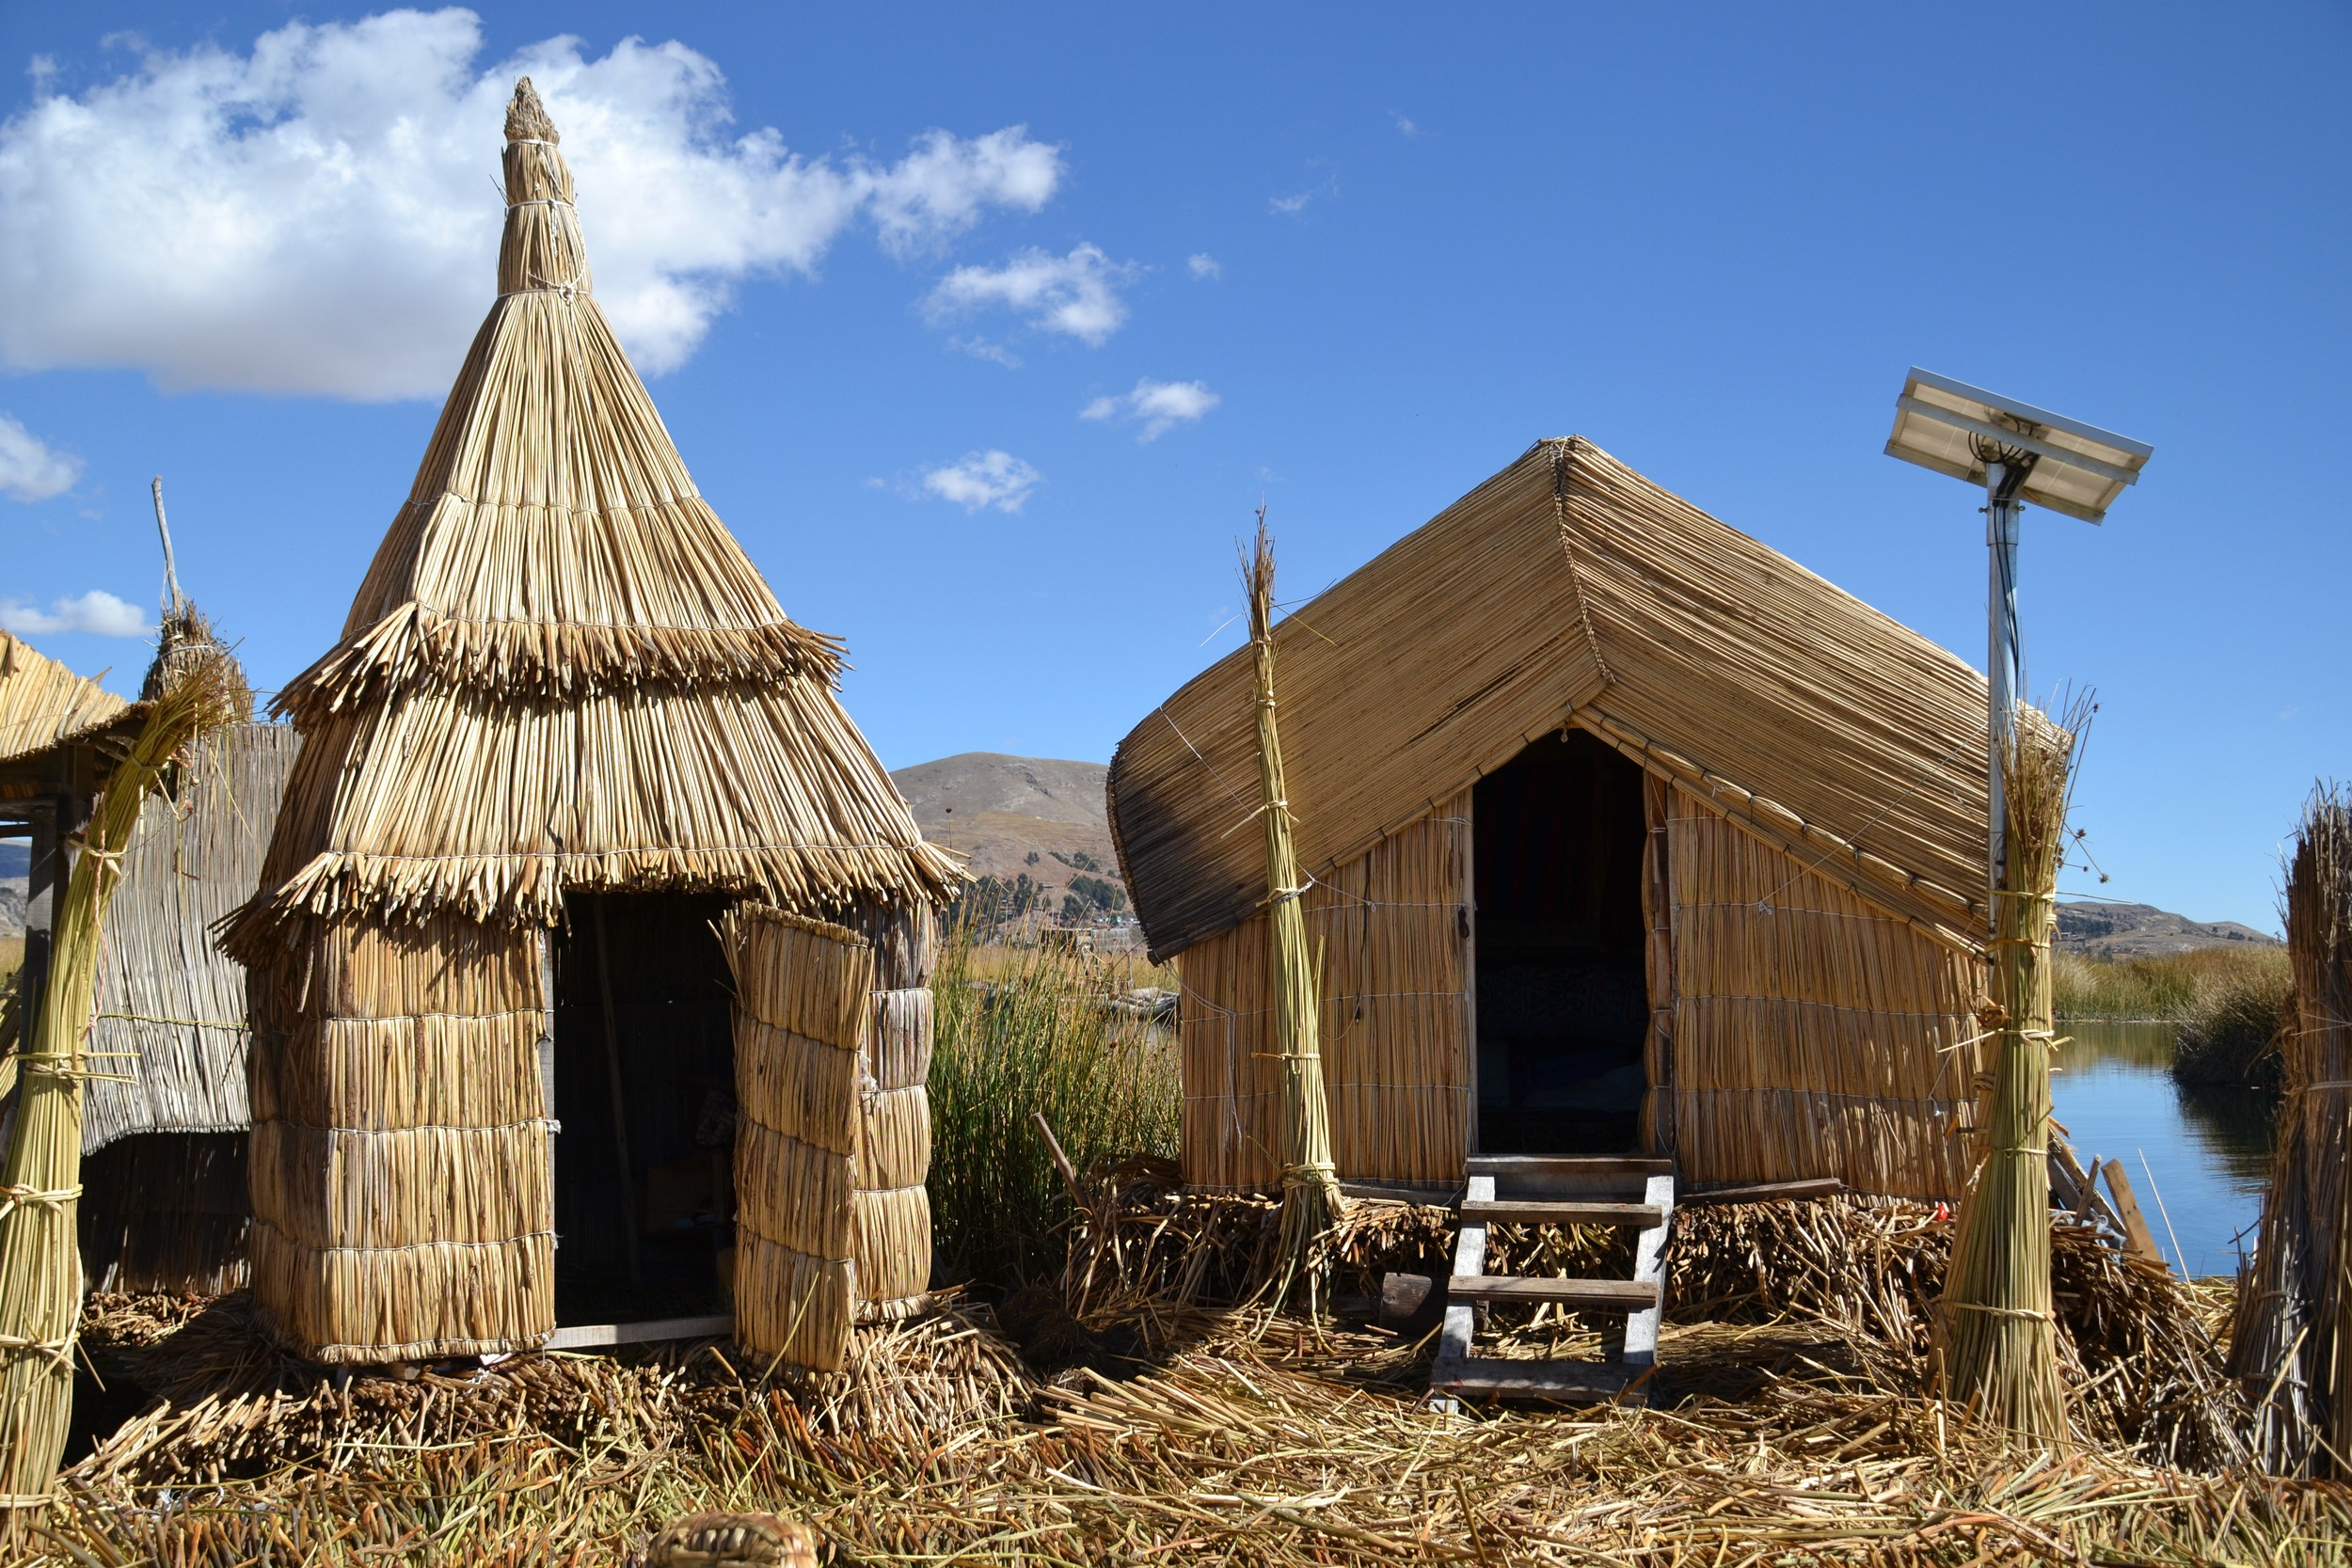 Interestingly, the Uros people have adopted solar panels, bringing them electricity.